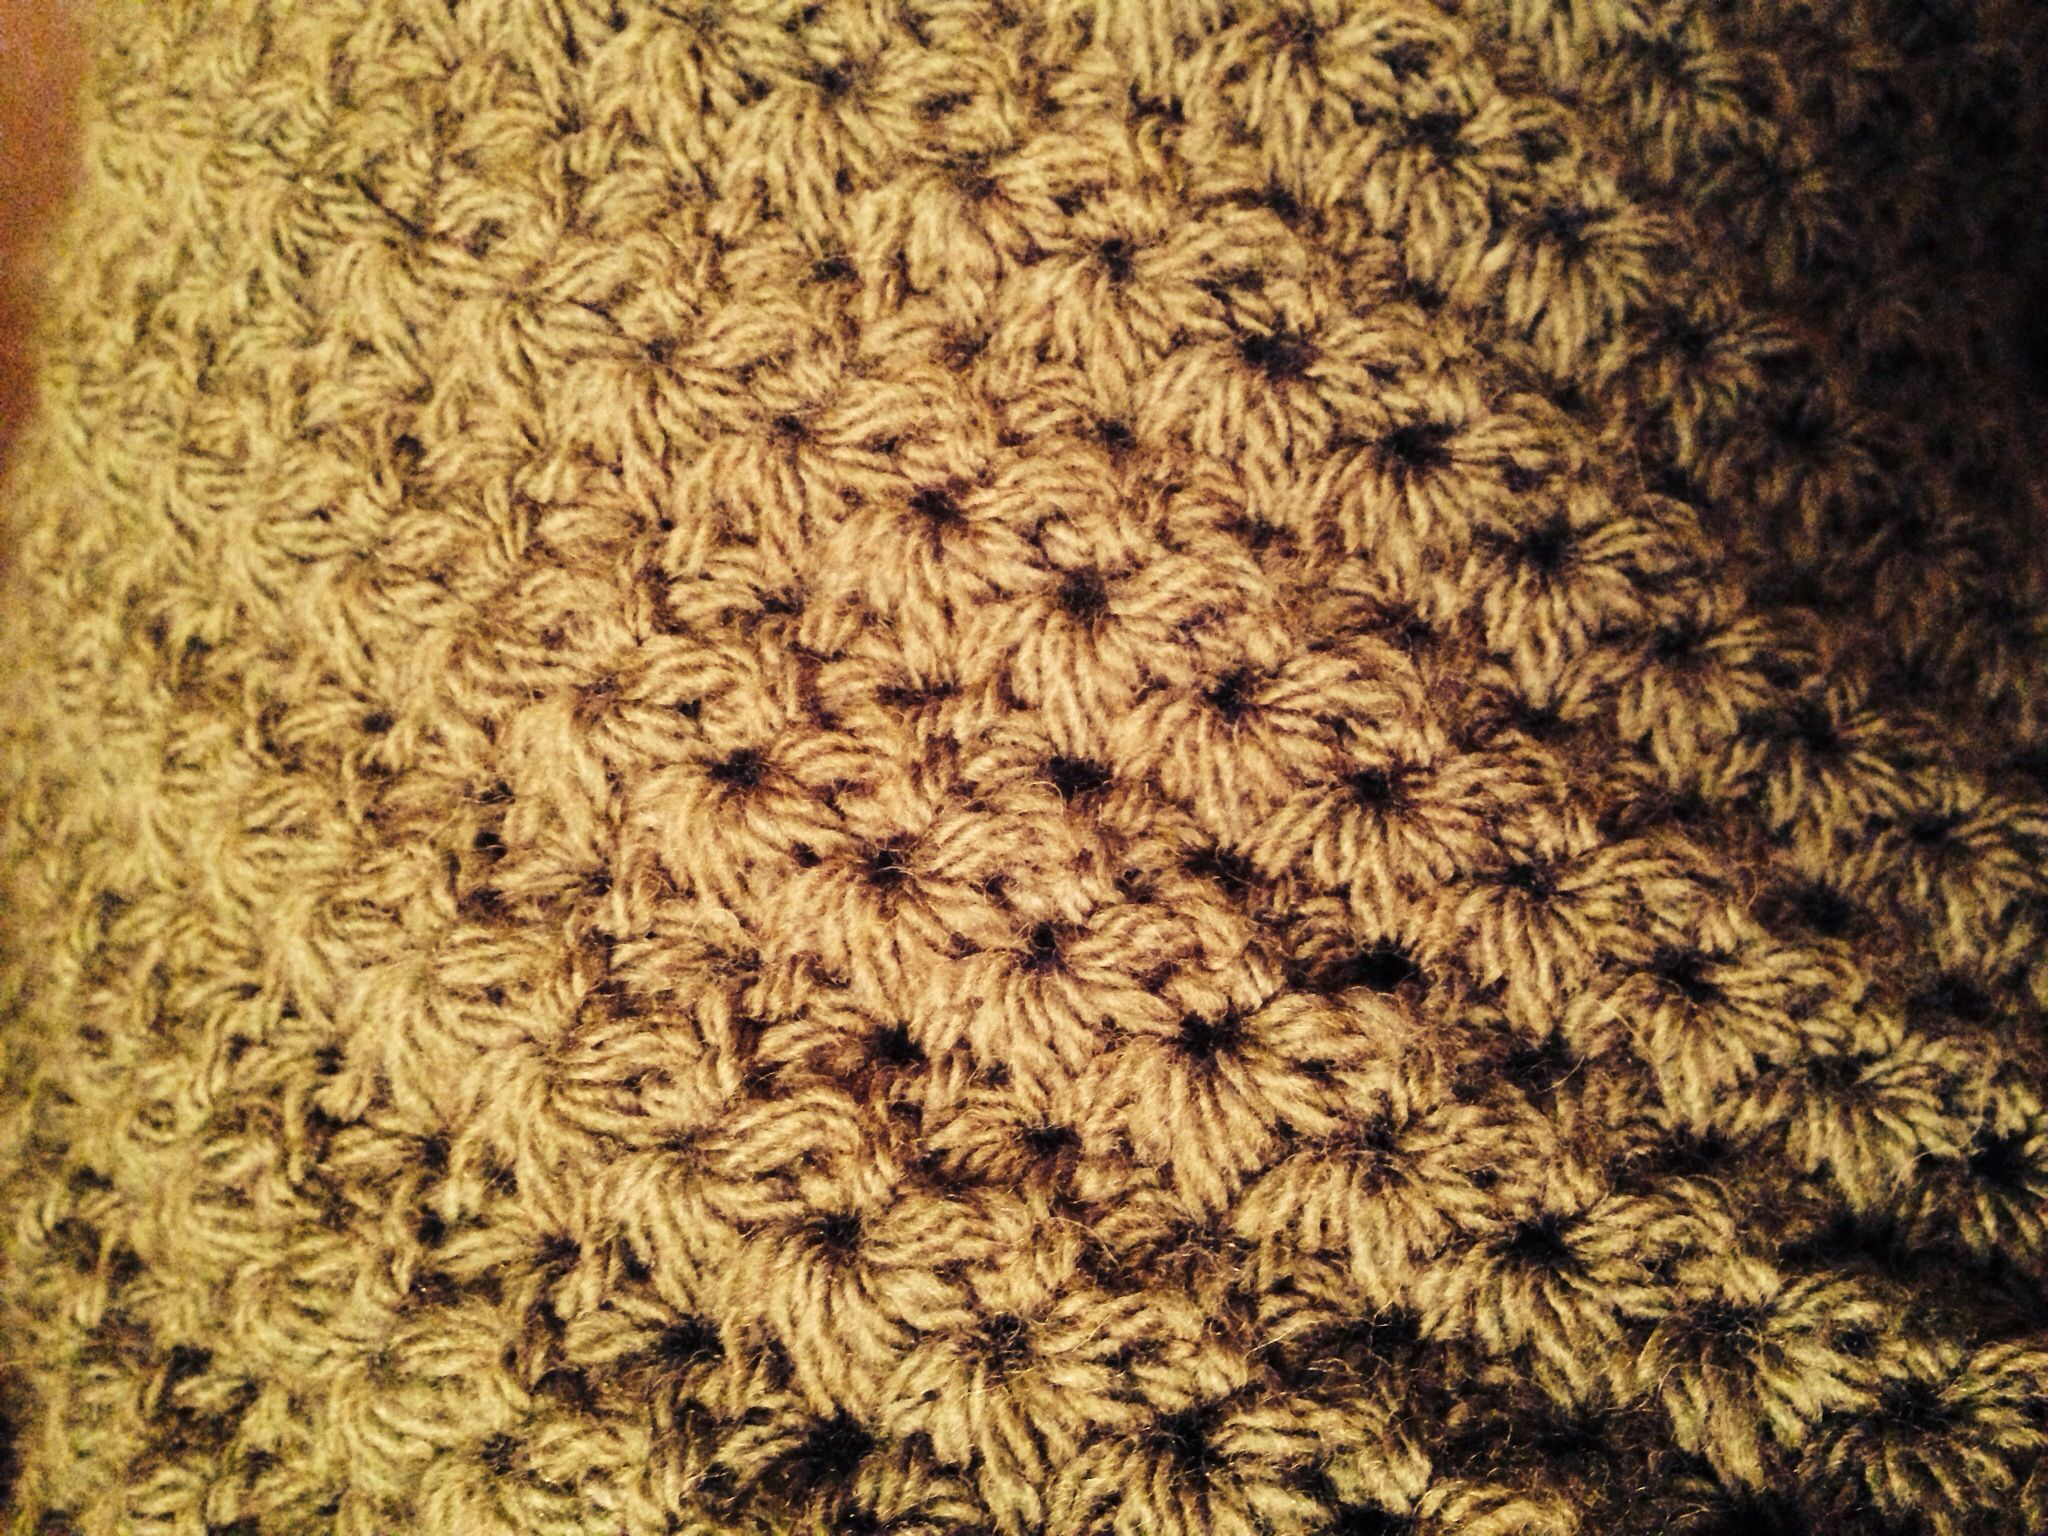 Crochet Stitches With Texture : Star stitch crochet cushion. cushions - knit and crochet textured s ...